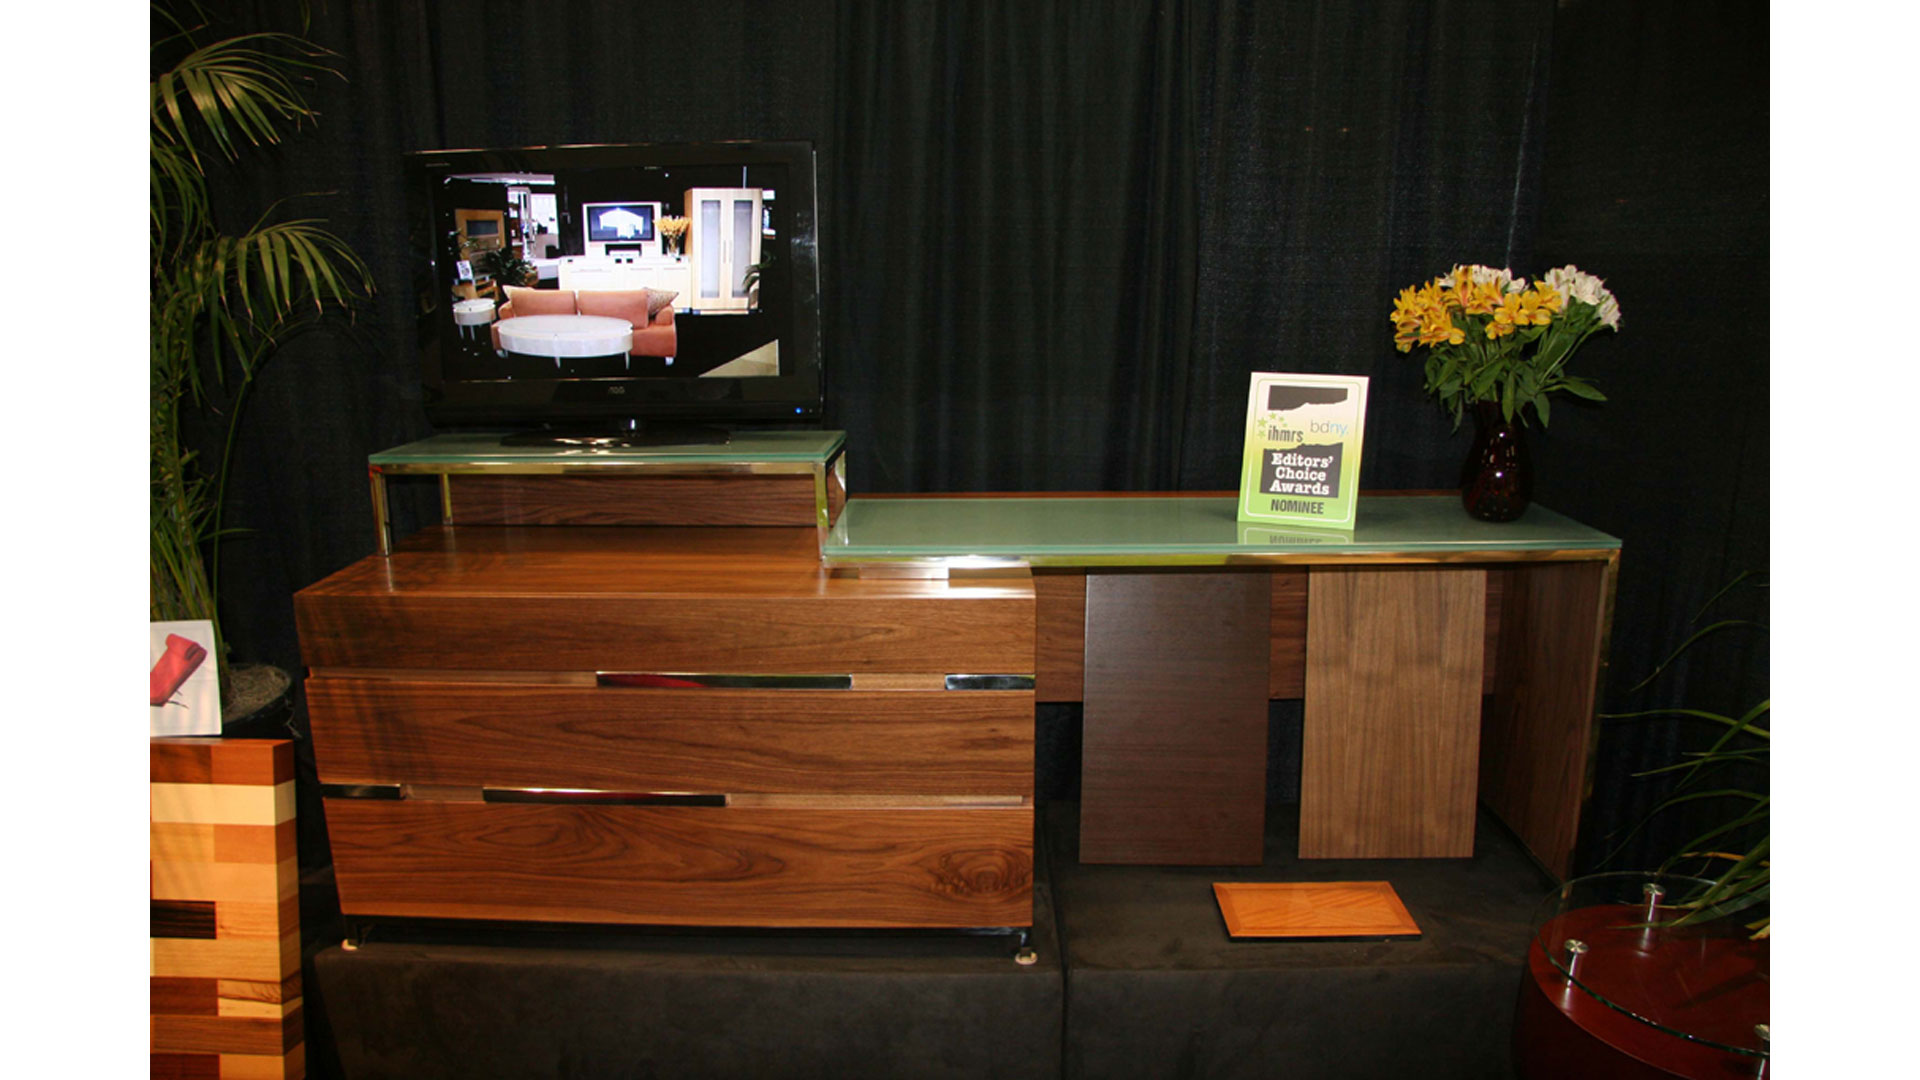 NOV 2011 Furniture Design Studios, Inc. Was A Nominee For The U201cBest Of  Showu201d Award For The Village Collection At The 2011 International  Hotel/Motel And ...